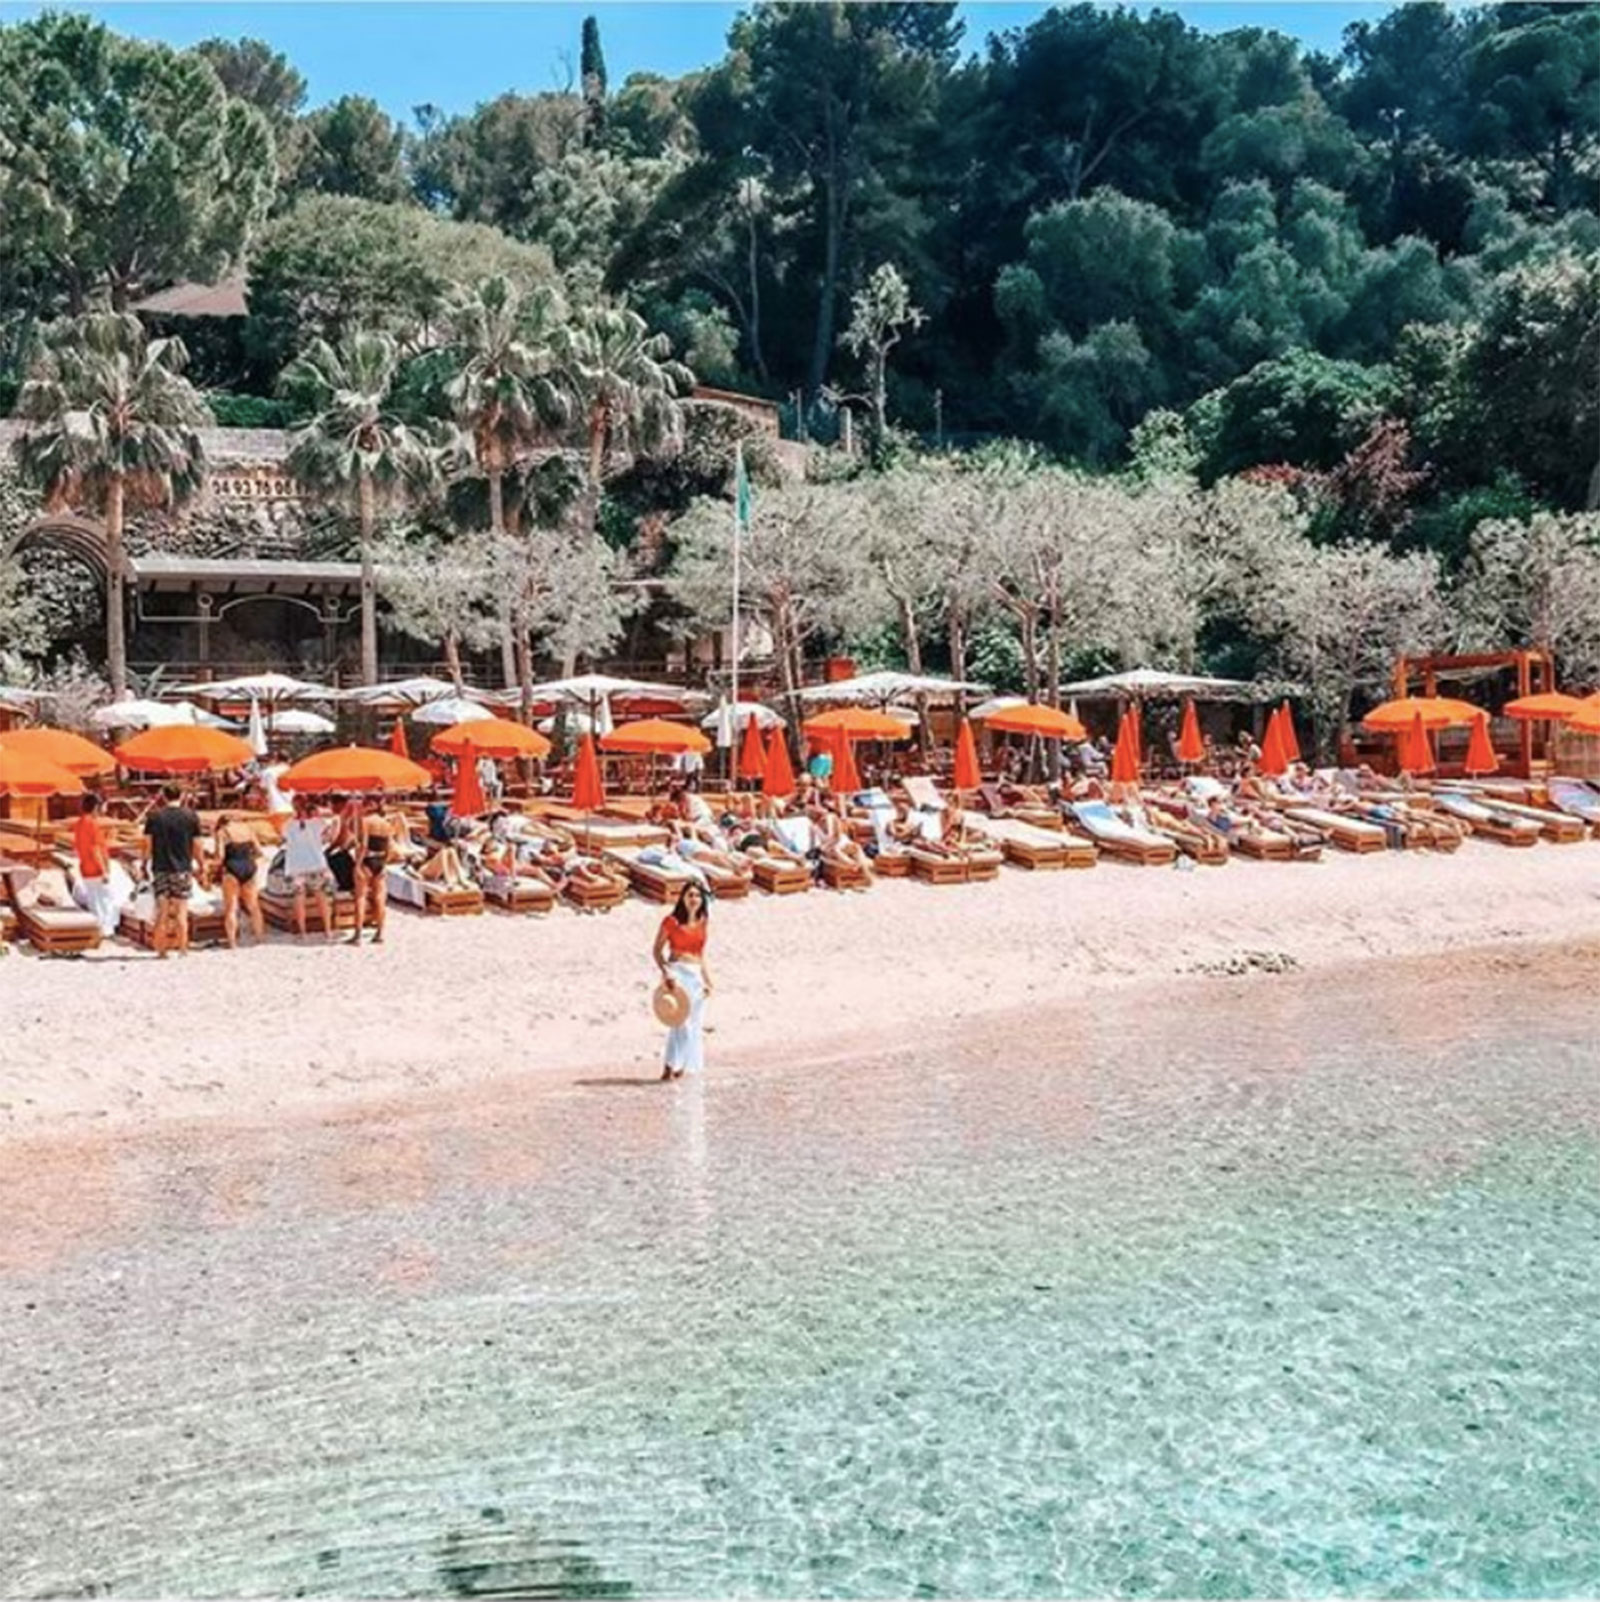 Passable_Beach_8_The_Ink_Collective_Inside_Ink_Pret_A_Partir_Guide_To_Cote_d'Azur_.jpg